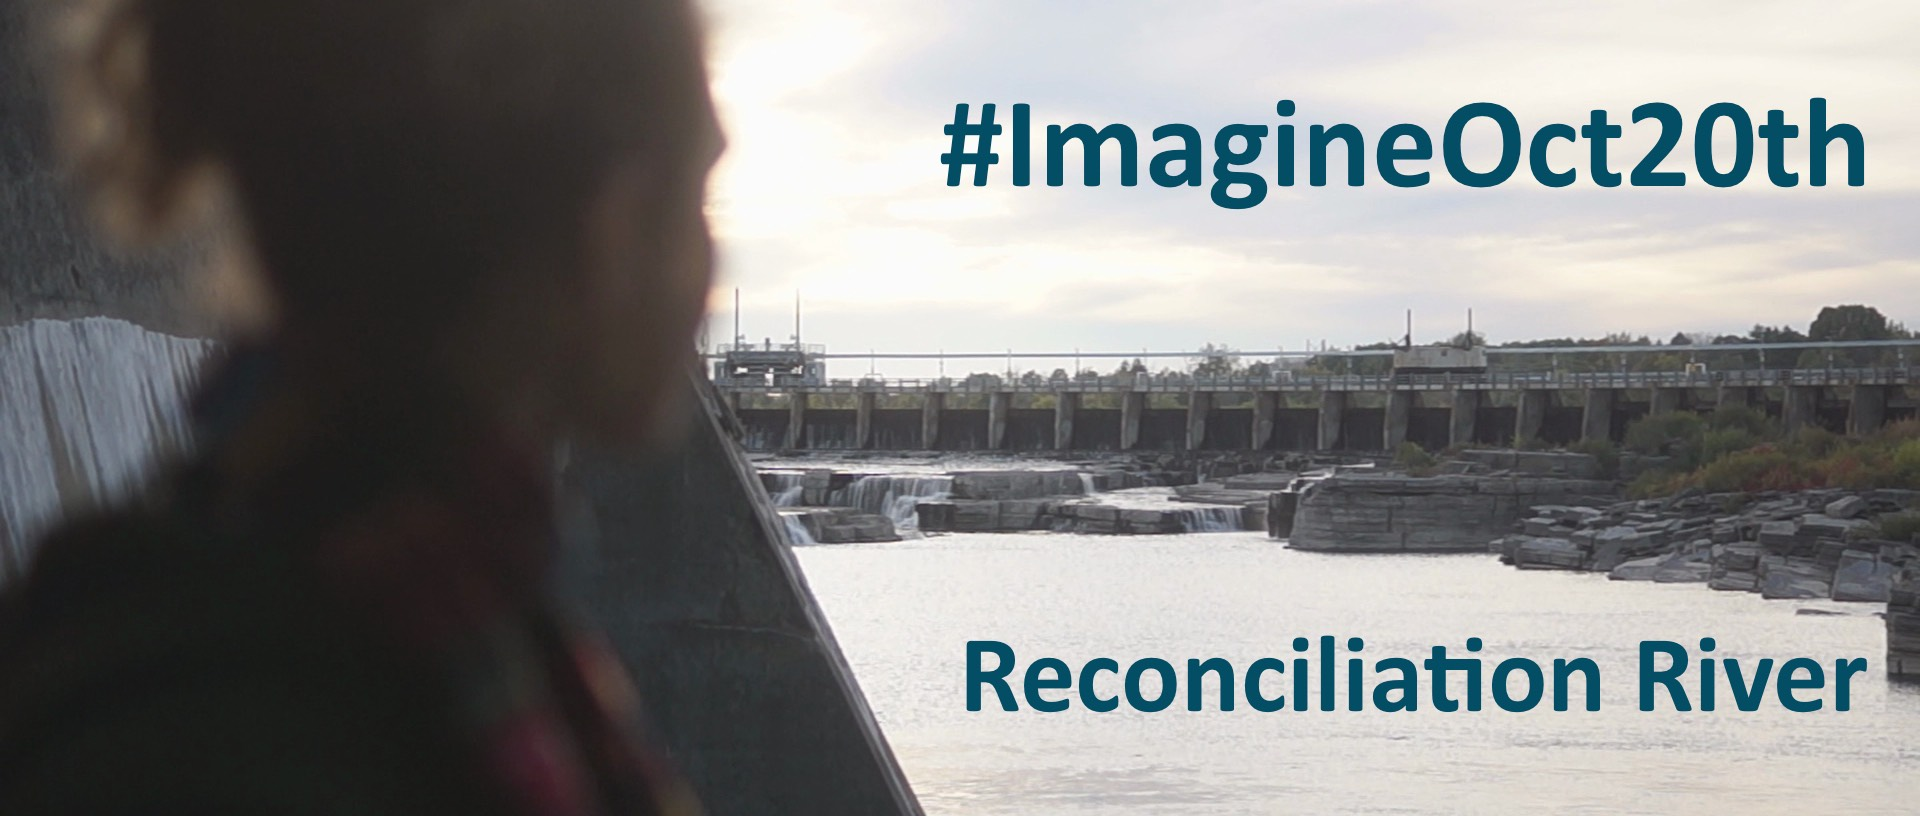 ReconciliationRiver_ImagineOct20th-banner